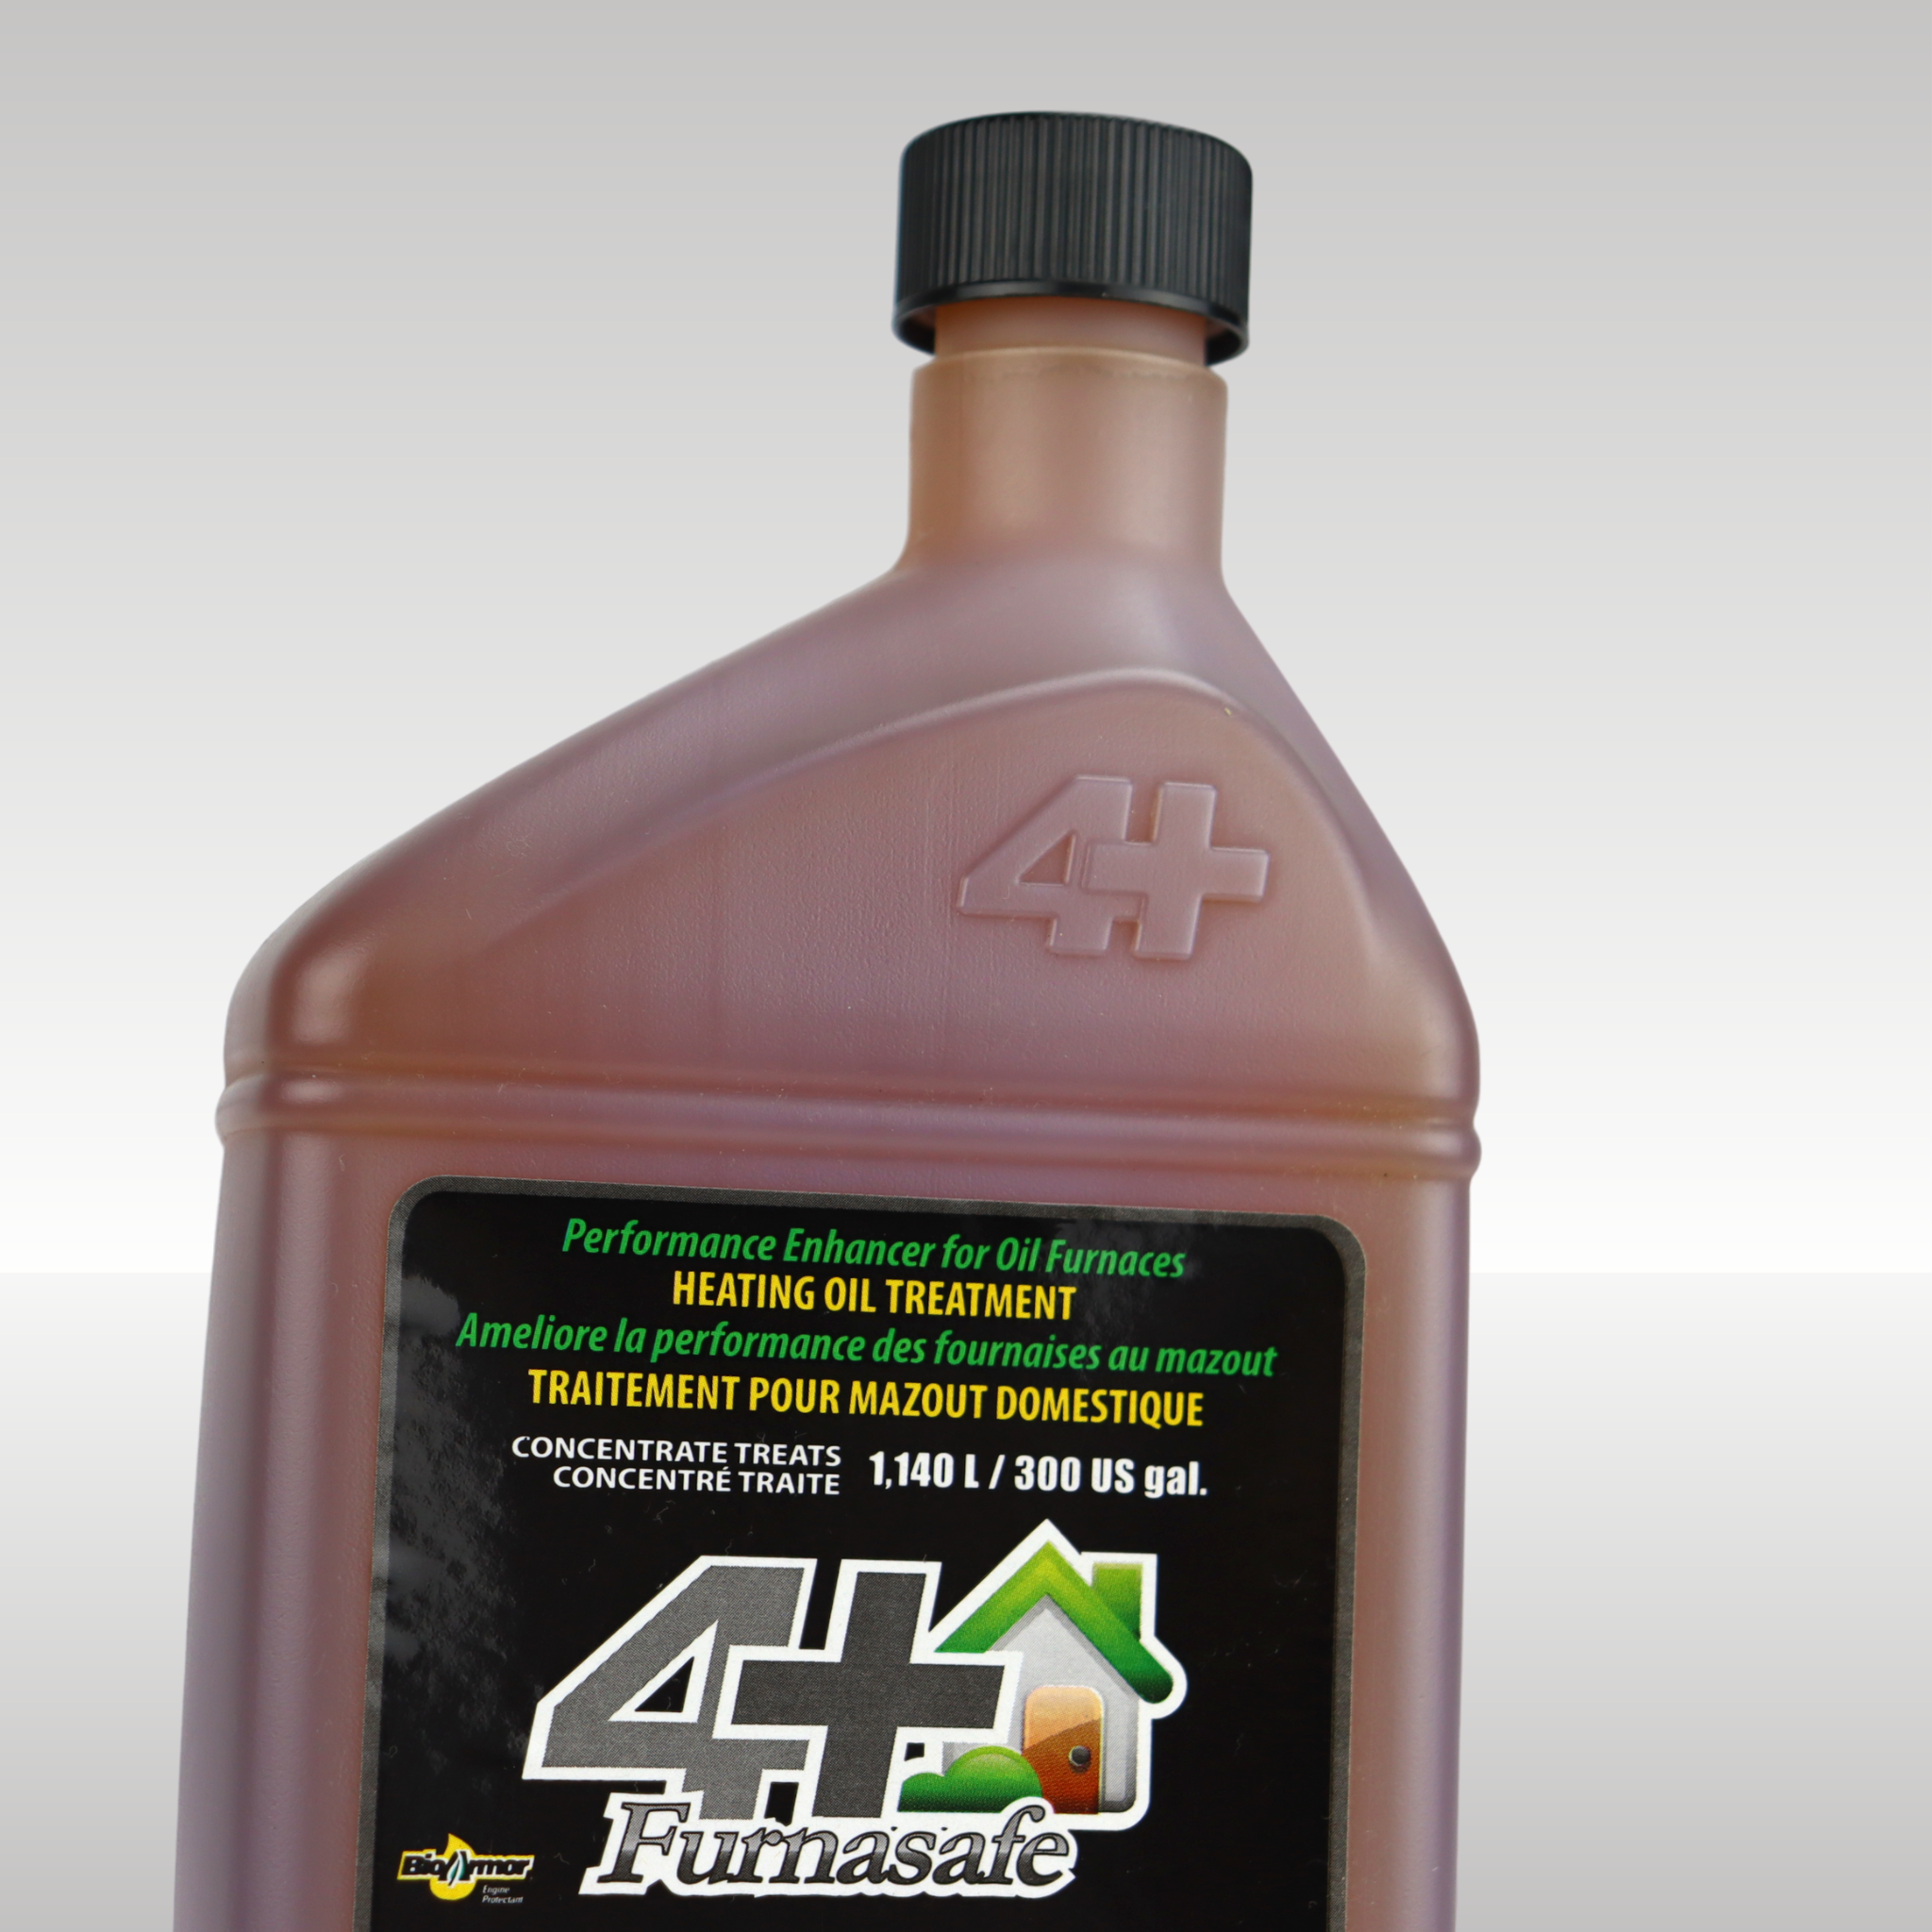 4+ Furnasafe: Efficiency For Heating Oil Furnaces